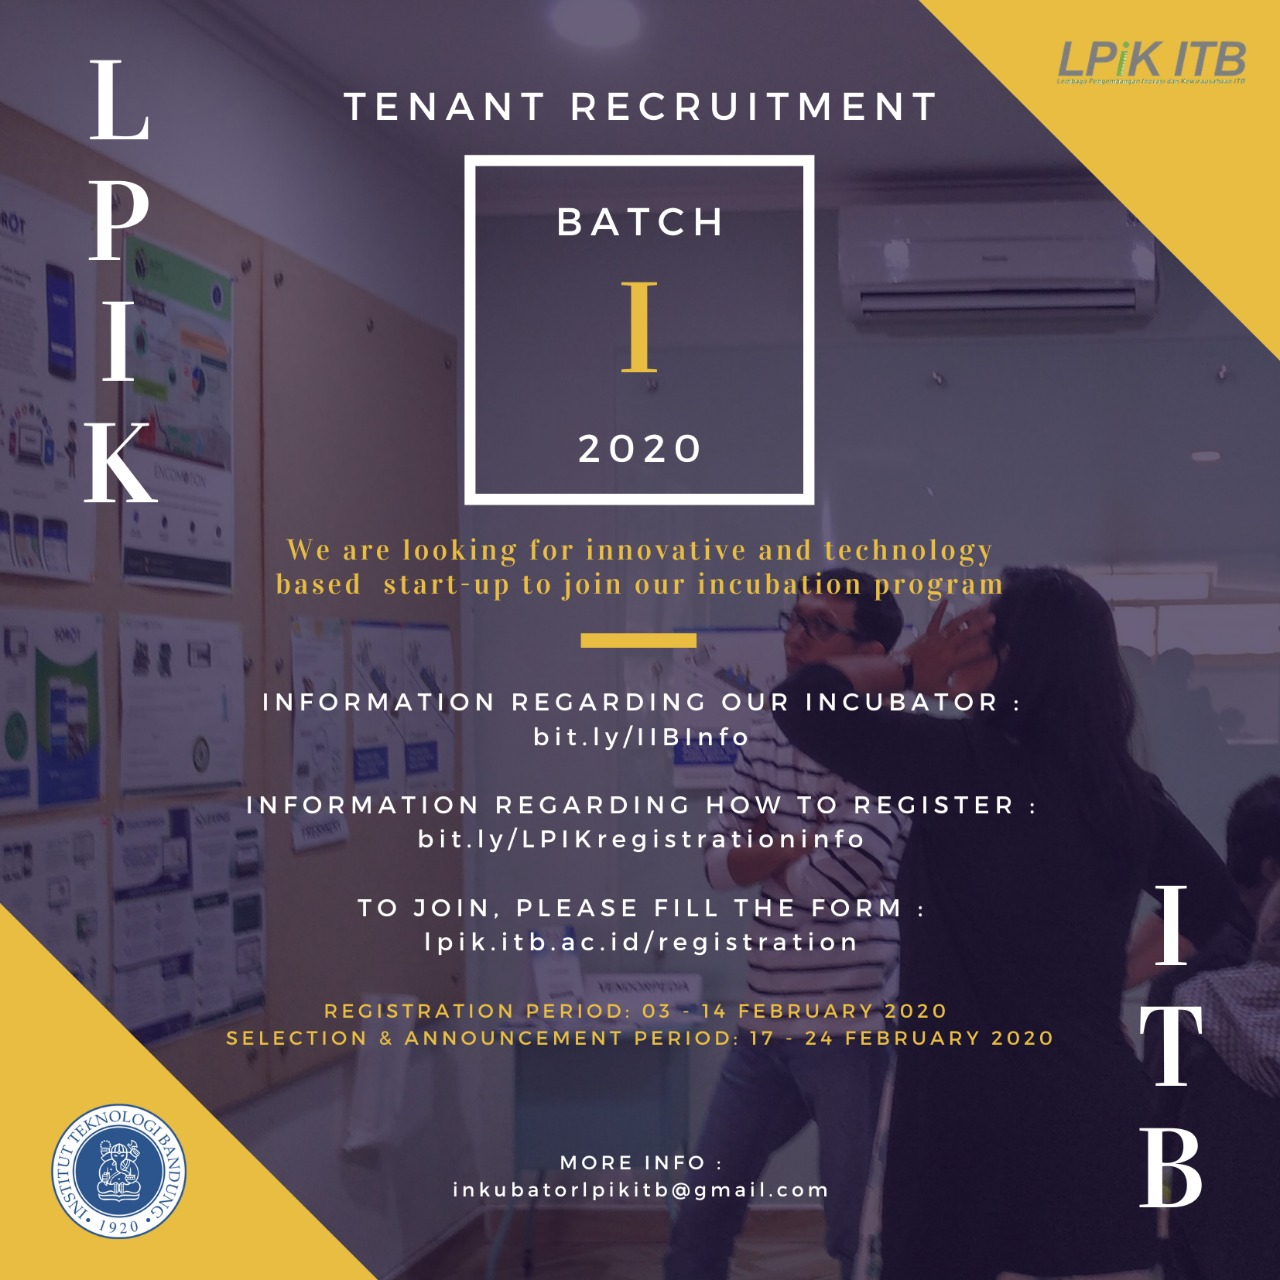 Tenant Recruitment Batch I - 2020